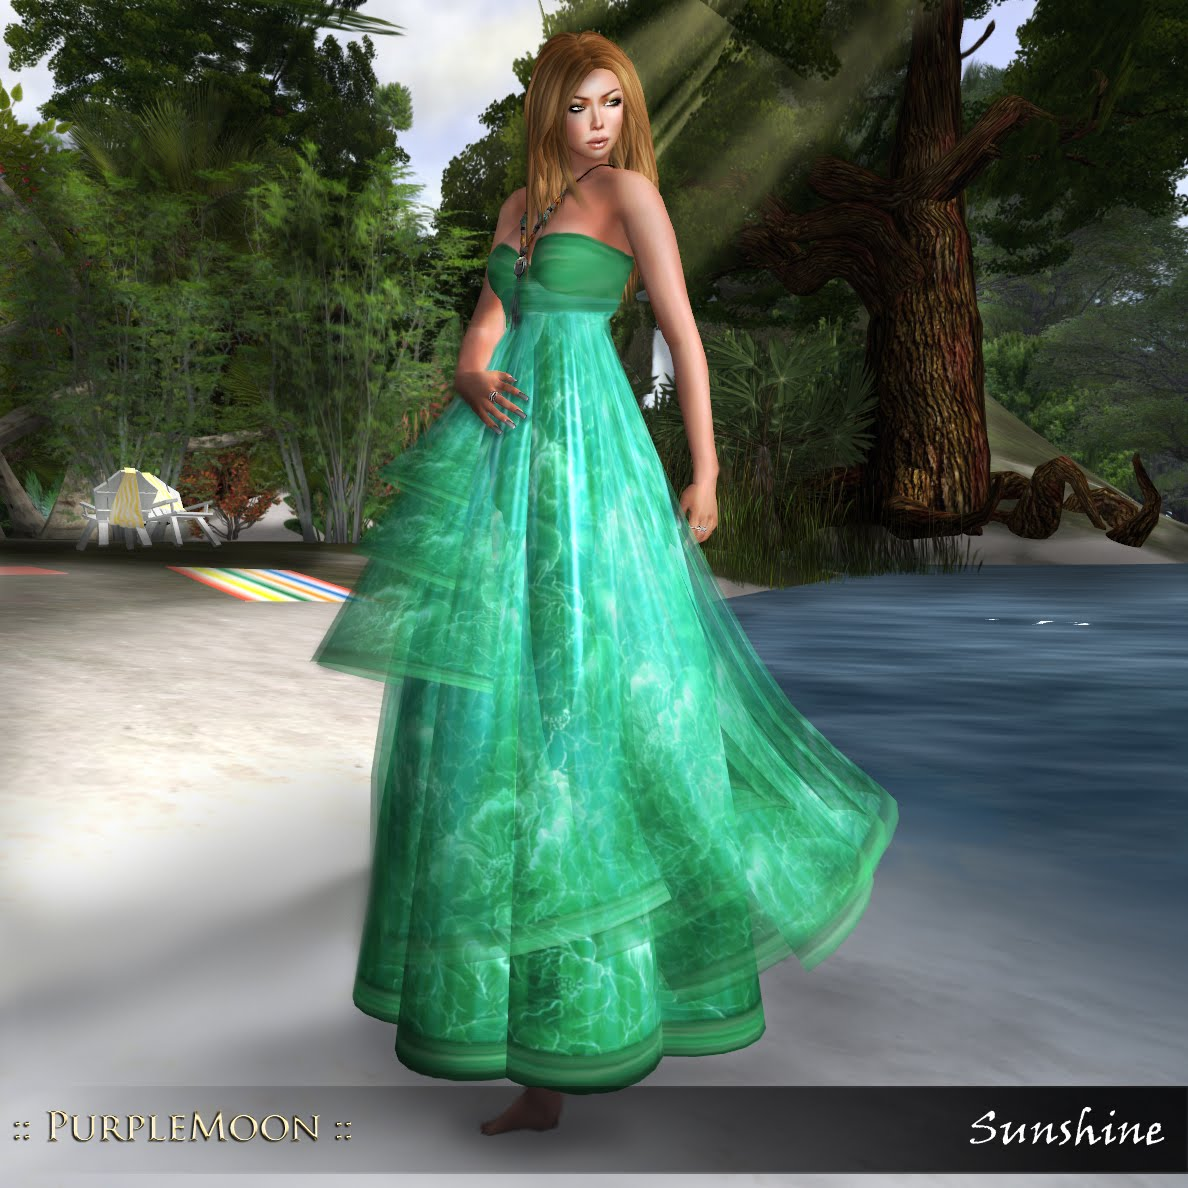 Sunshine New Summer Dress Purplemoon Creations